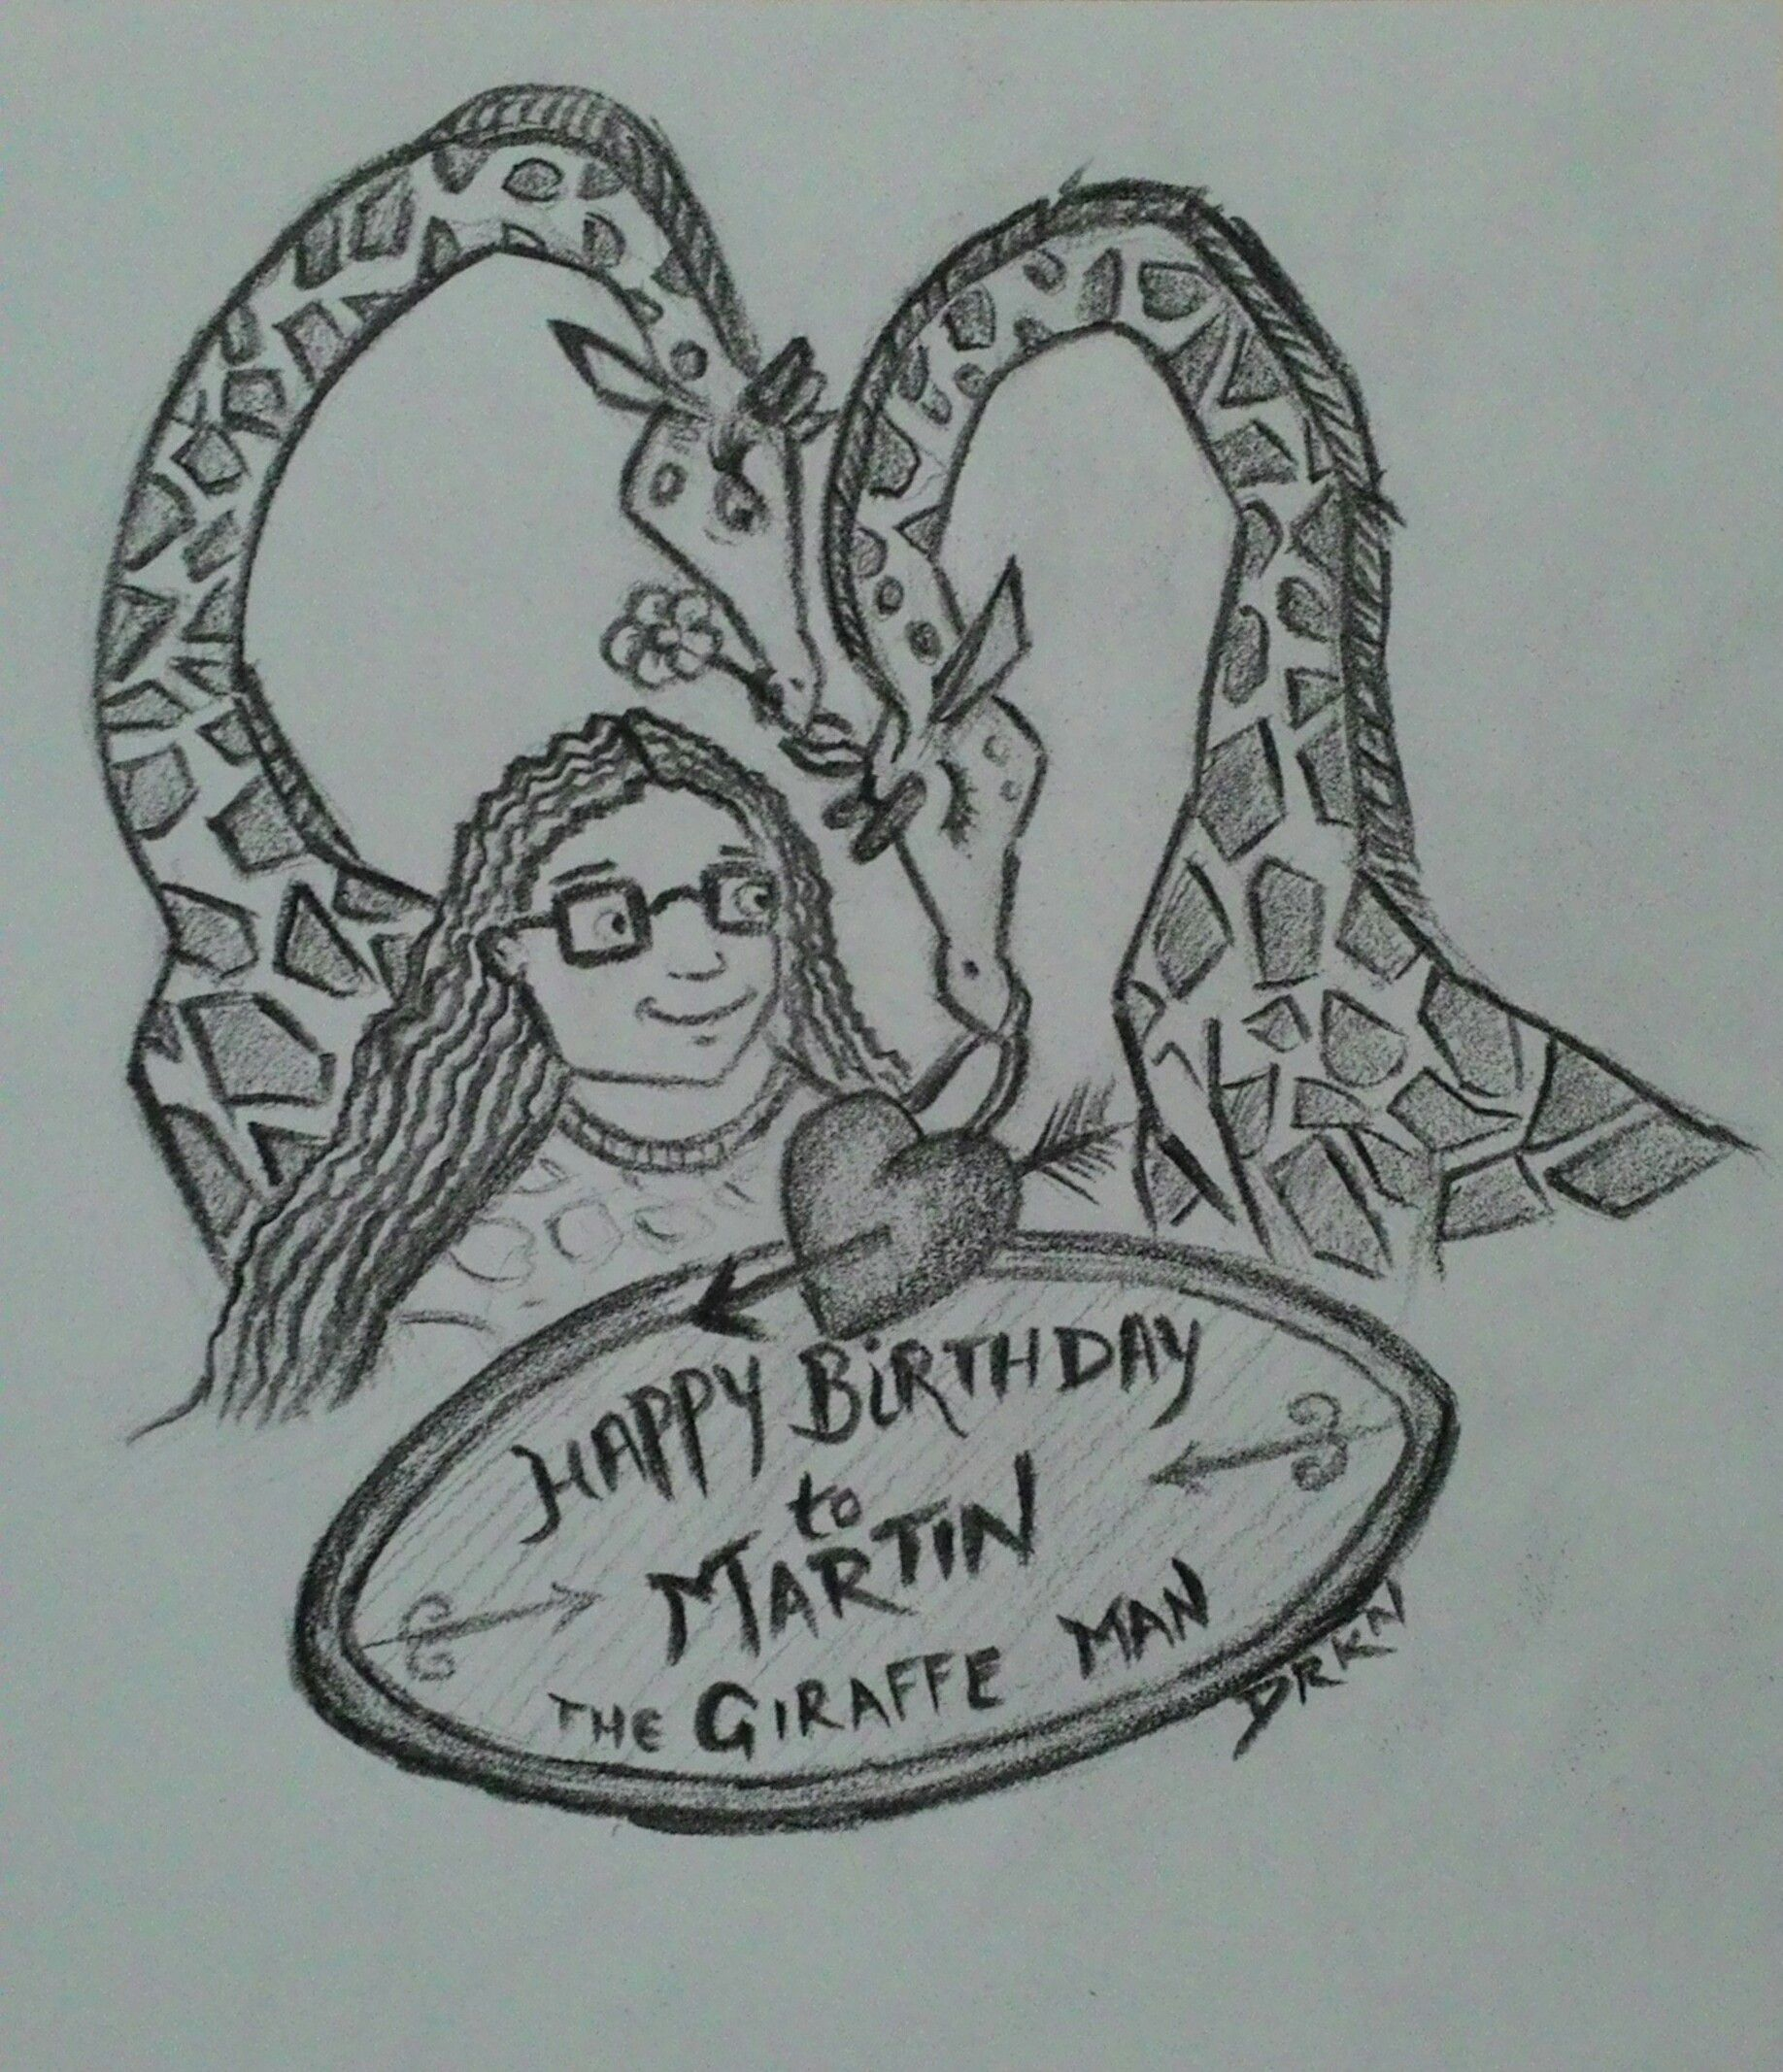 A quick sketch of my czech friend on his birthday wishing through my pencil he loves giraffes